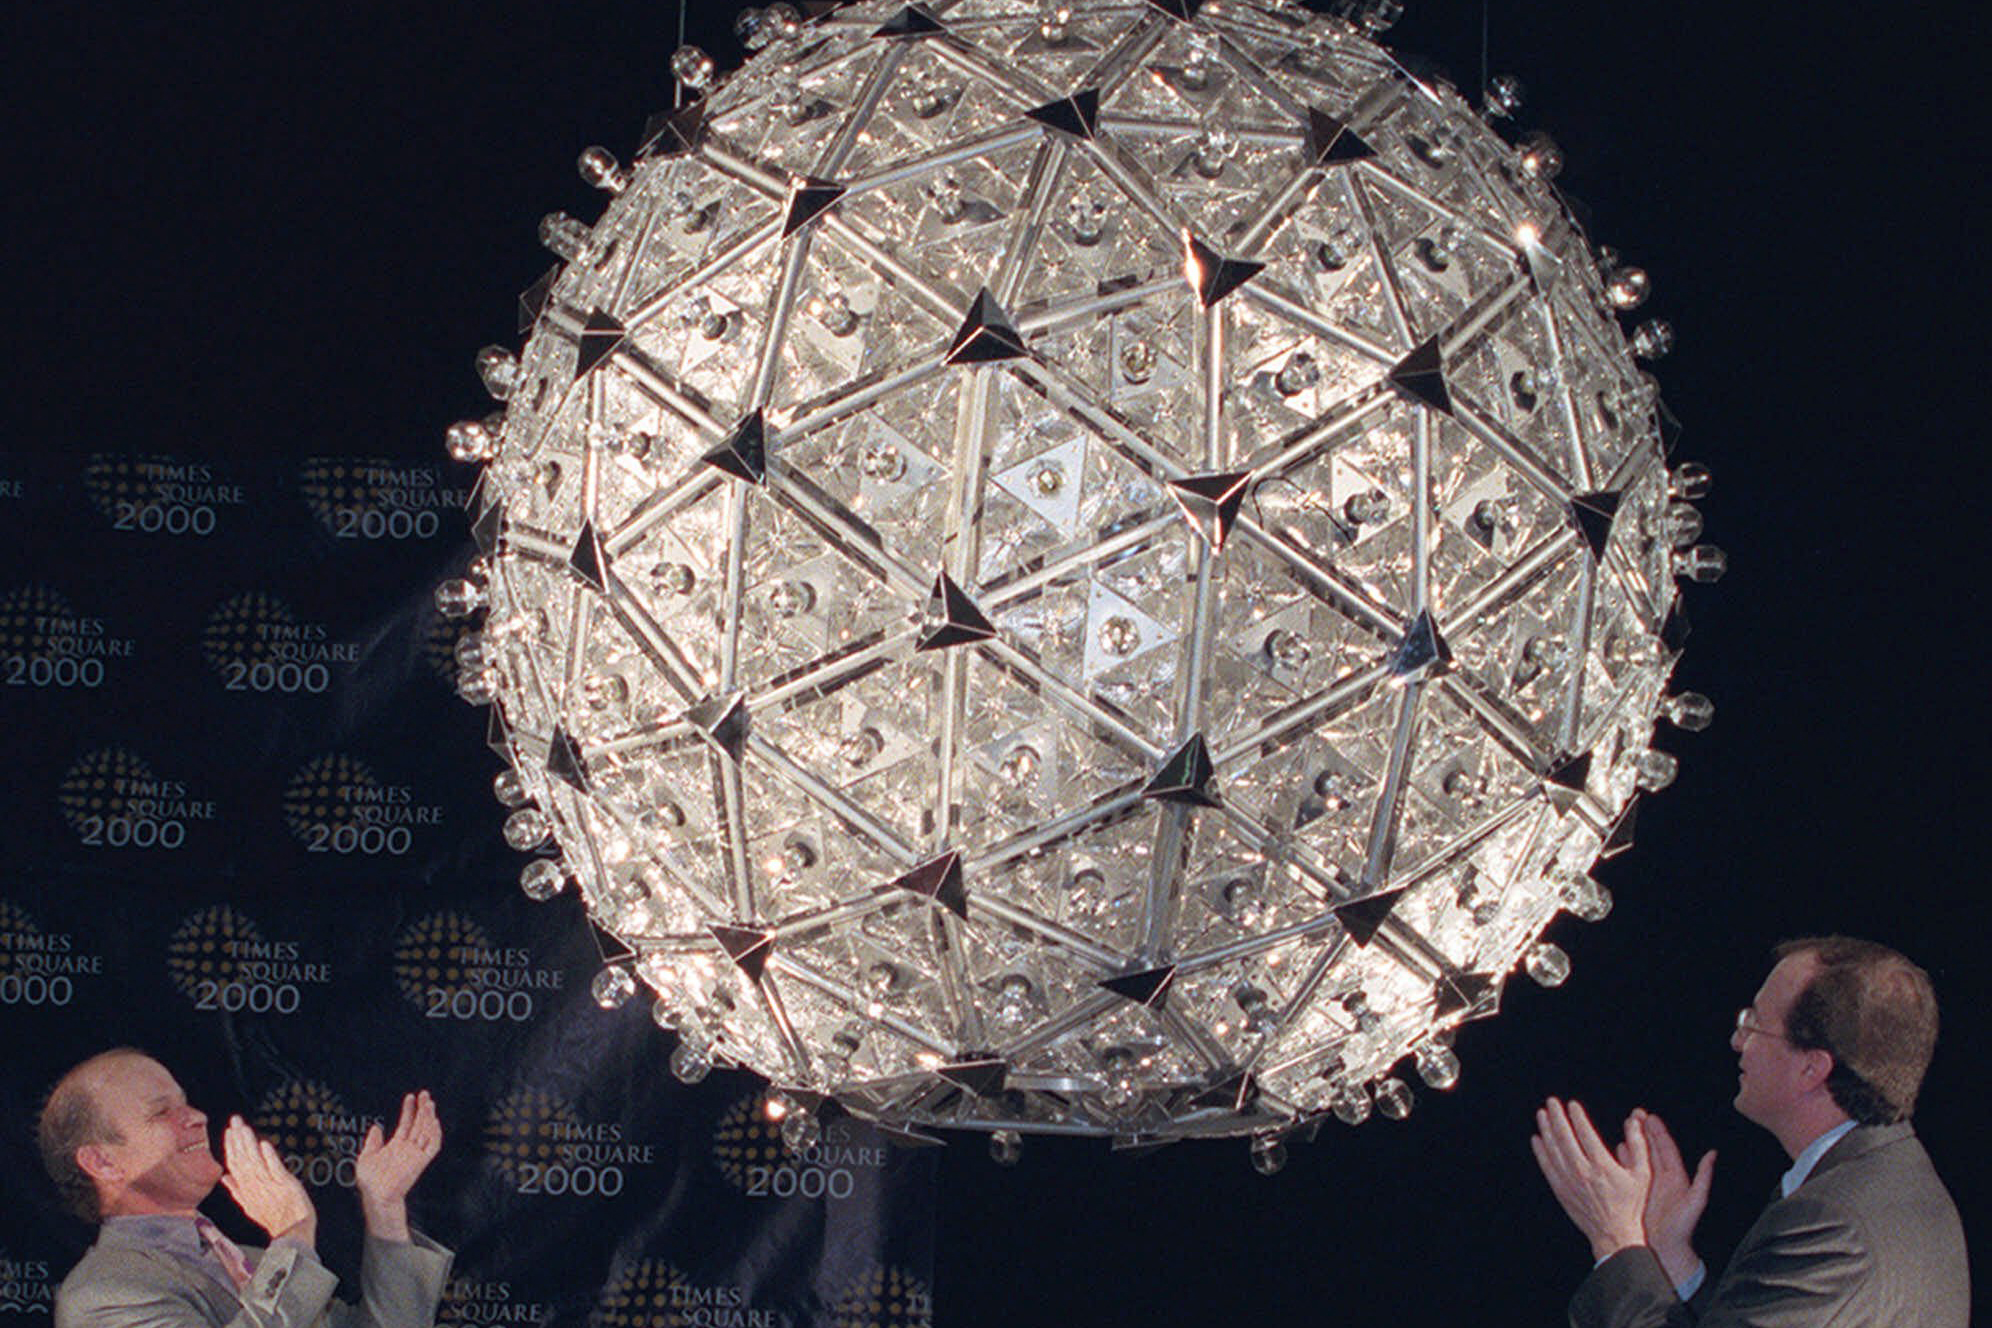 The millennial crystal at its unveiling in 1999. In addition to the 504 triangular crystals, it contained 600 multicolored light bulbs, 96 strobe lights and 92 rotating pyramid mirrors.